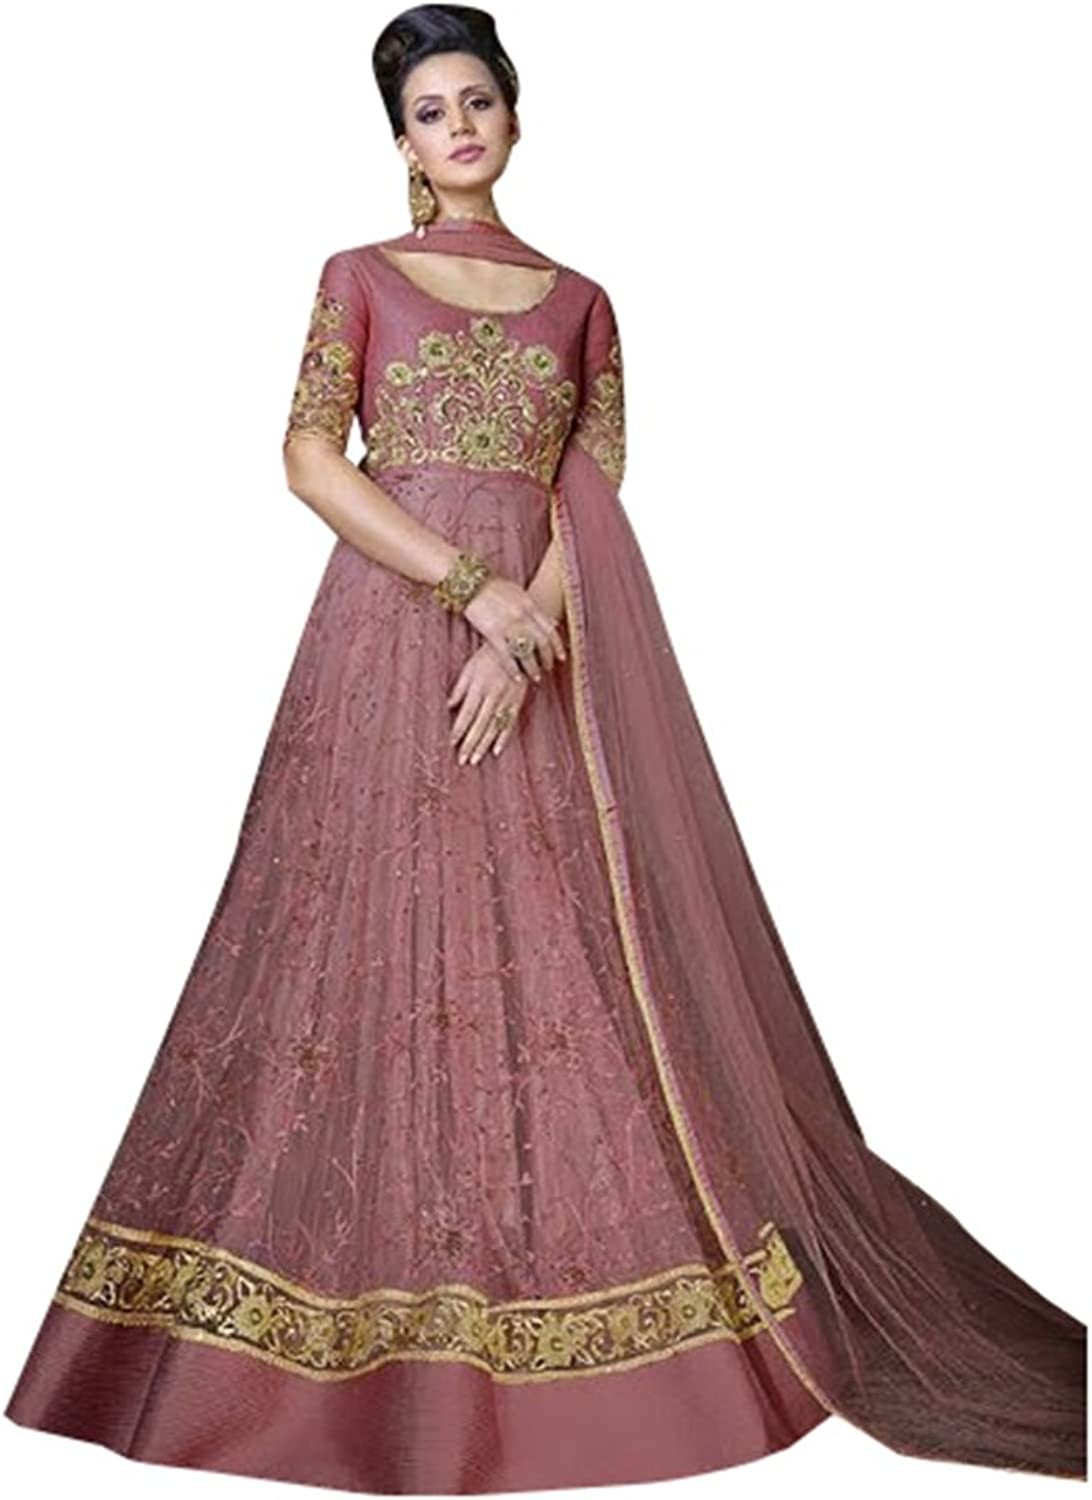 Bollywood Collection Anarkali Salwar Kameez Suit Ceremony Punjabi Muslin 640 2